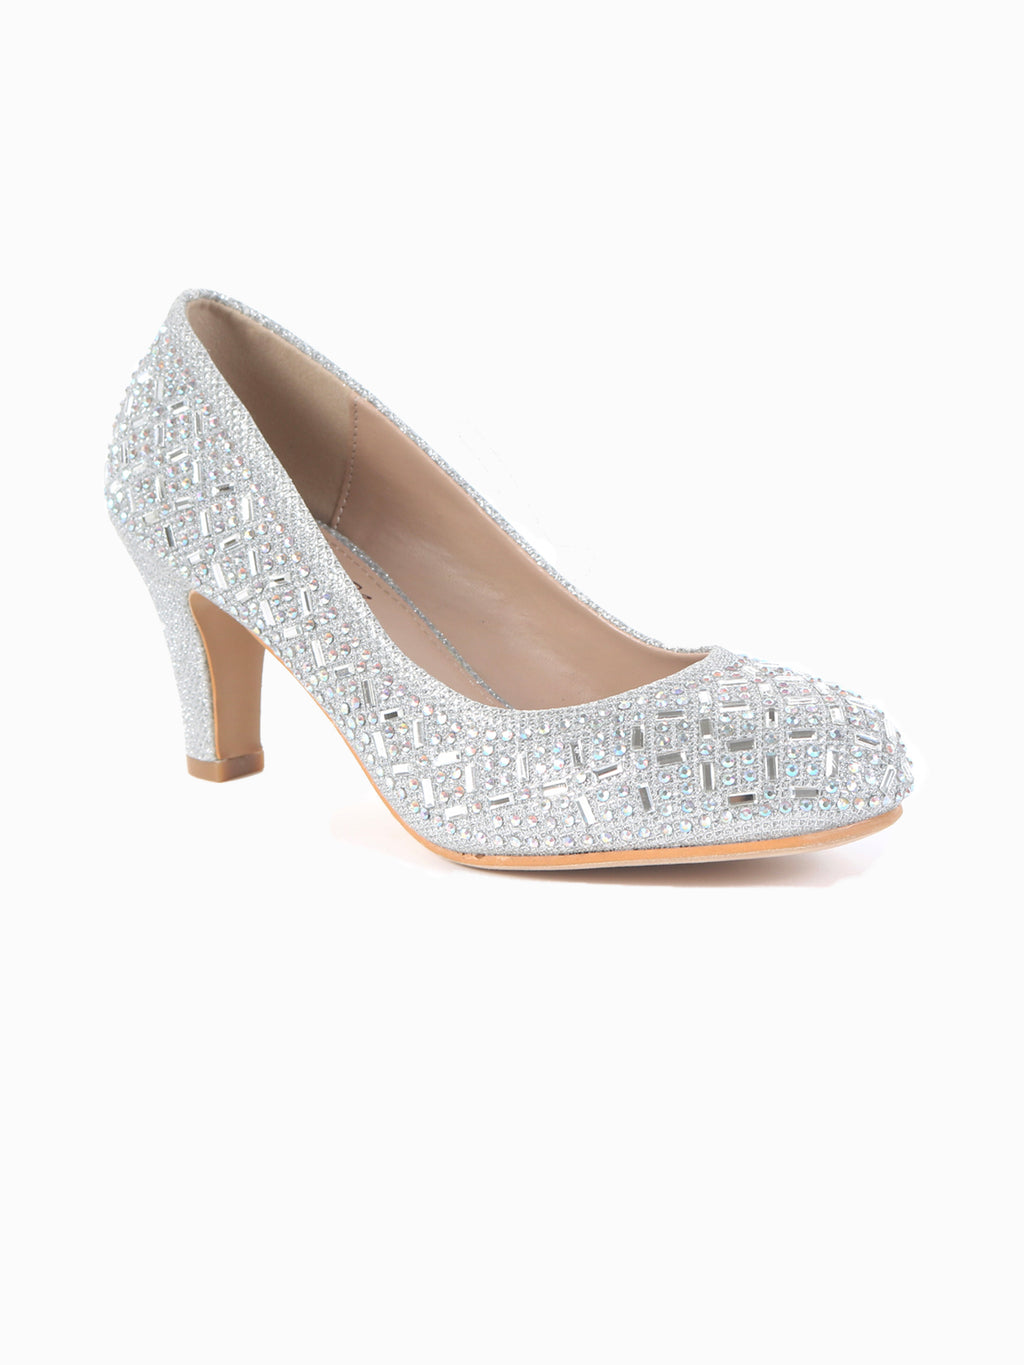 Low Stiletto Rhinestone Pump